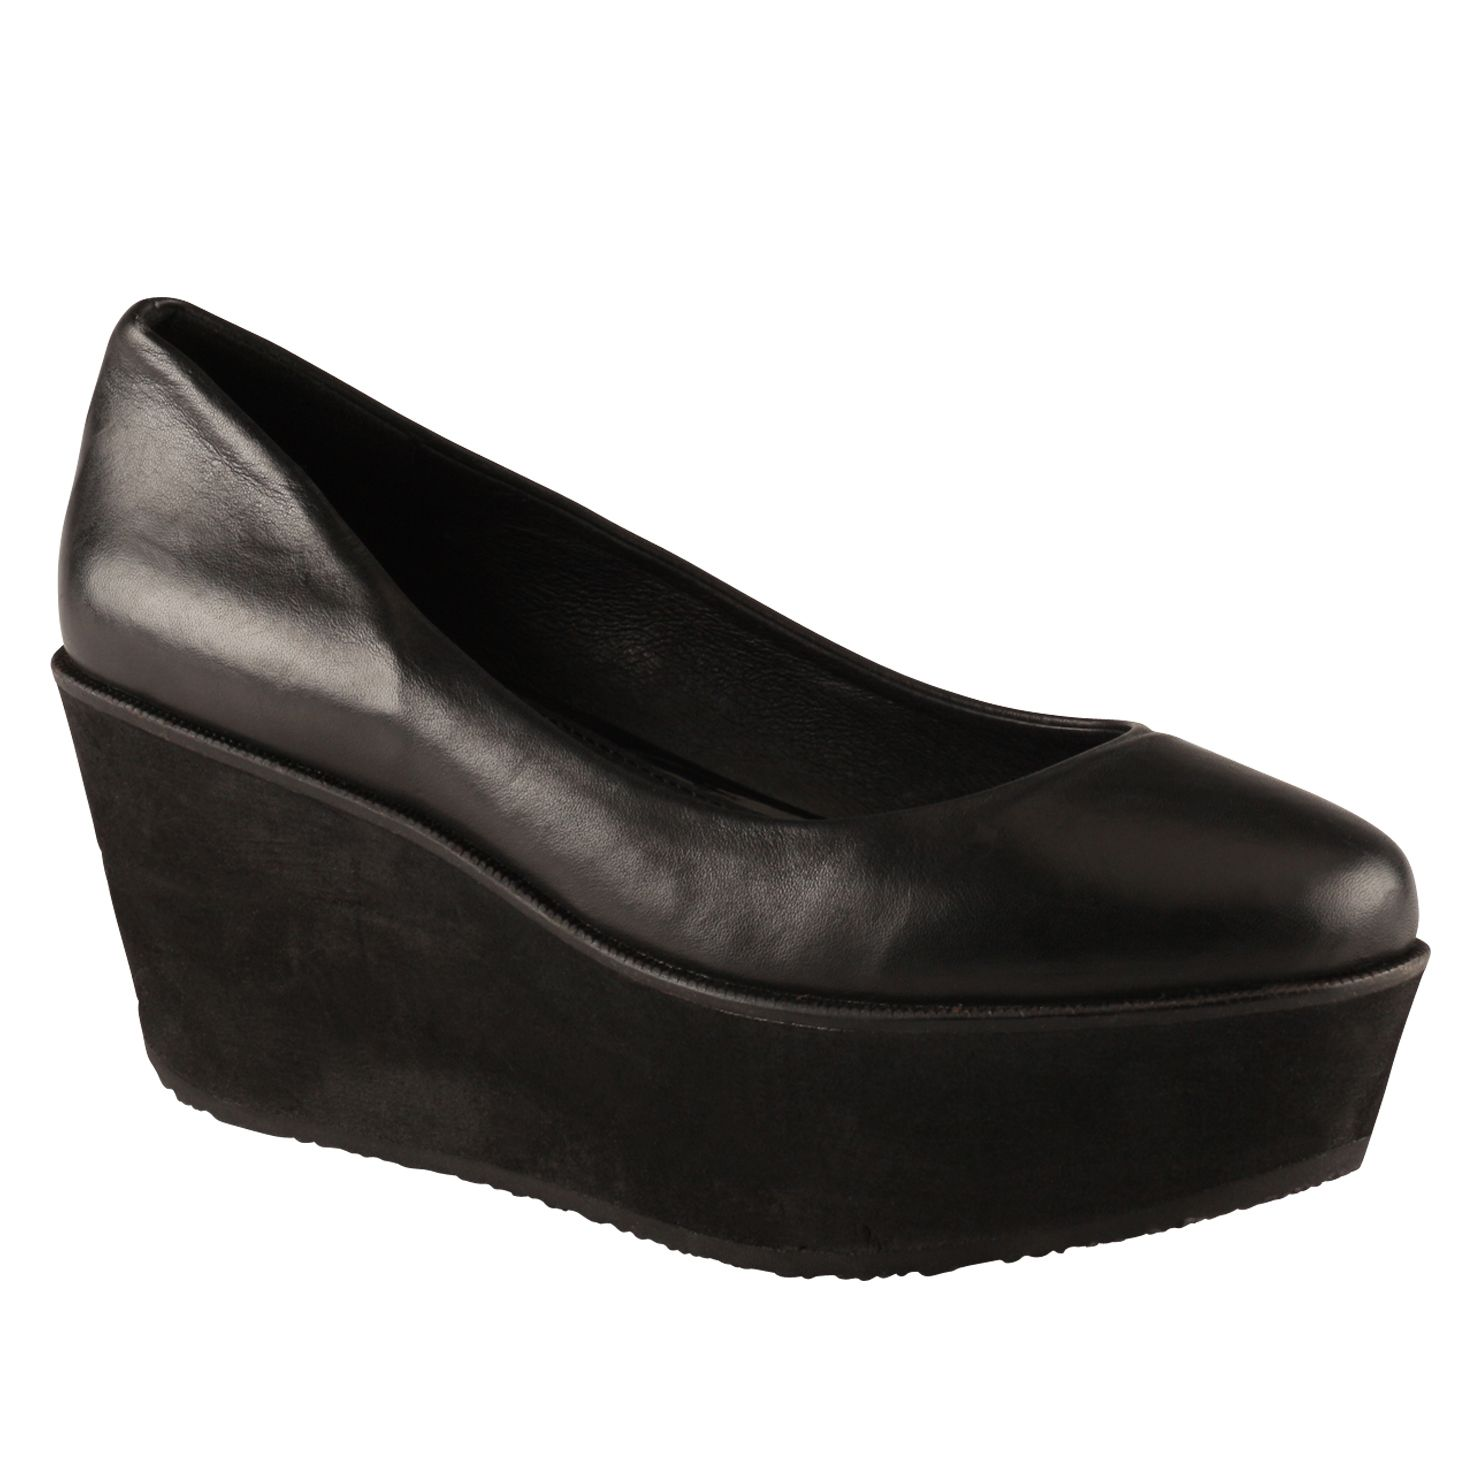 Dominoque Wedge Shoes